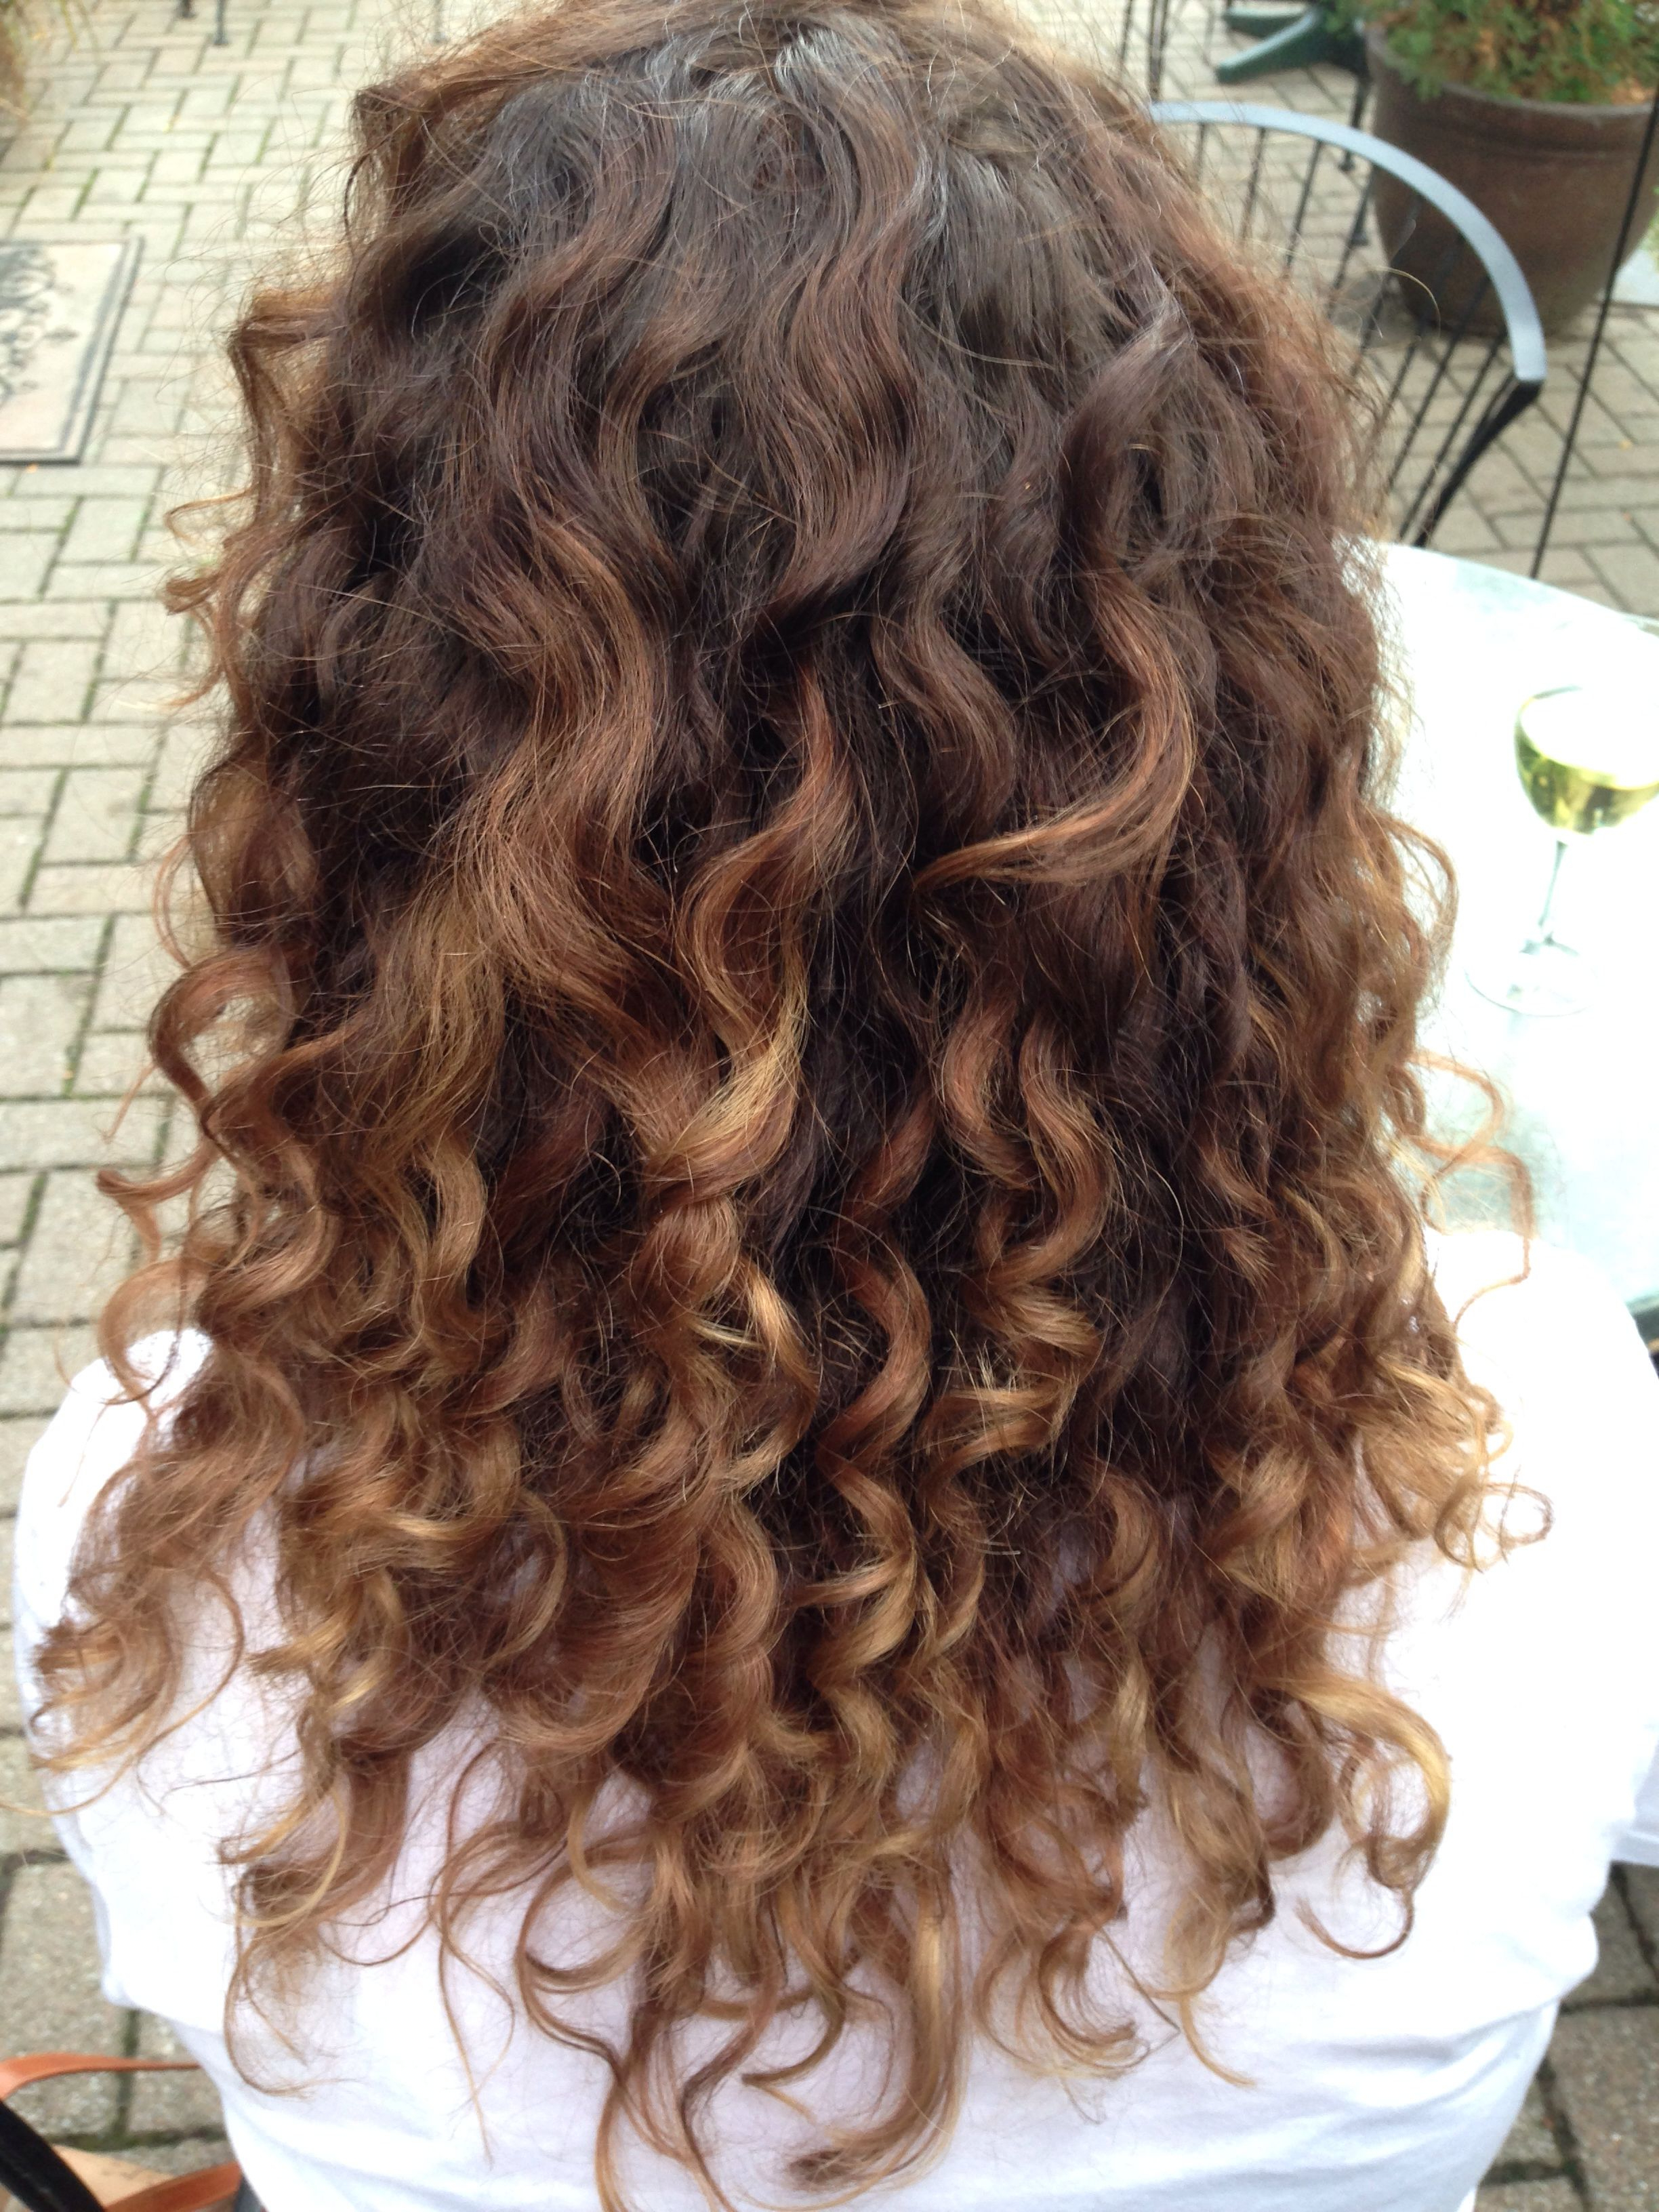 Naturally Curly Hair Carmel Ombréthe Best In The Business In Brown Curly Hairstyles With Highlights (View 16 of 20)